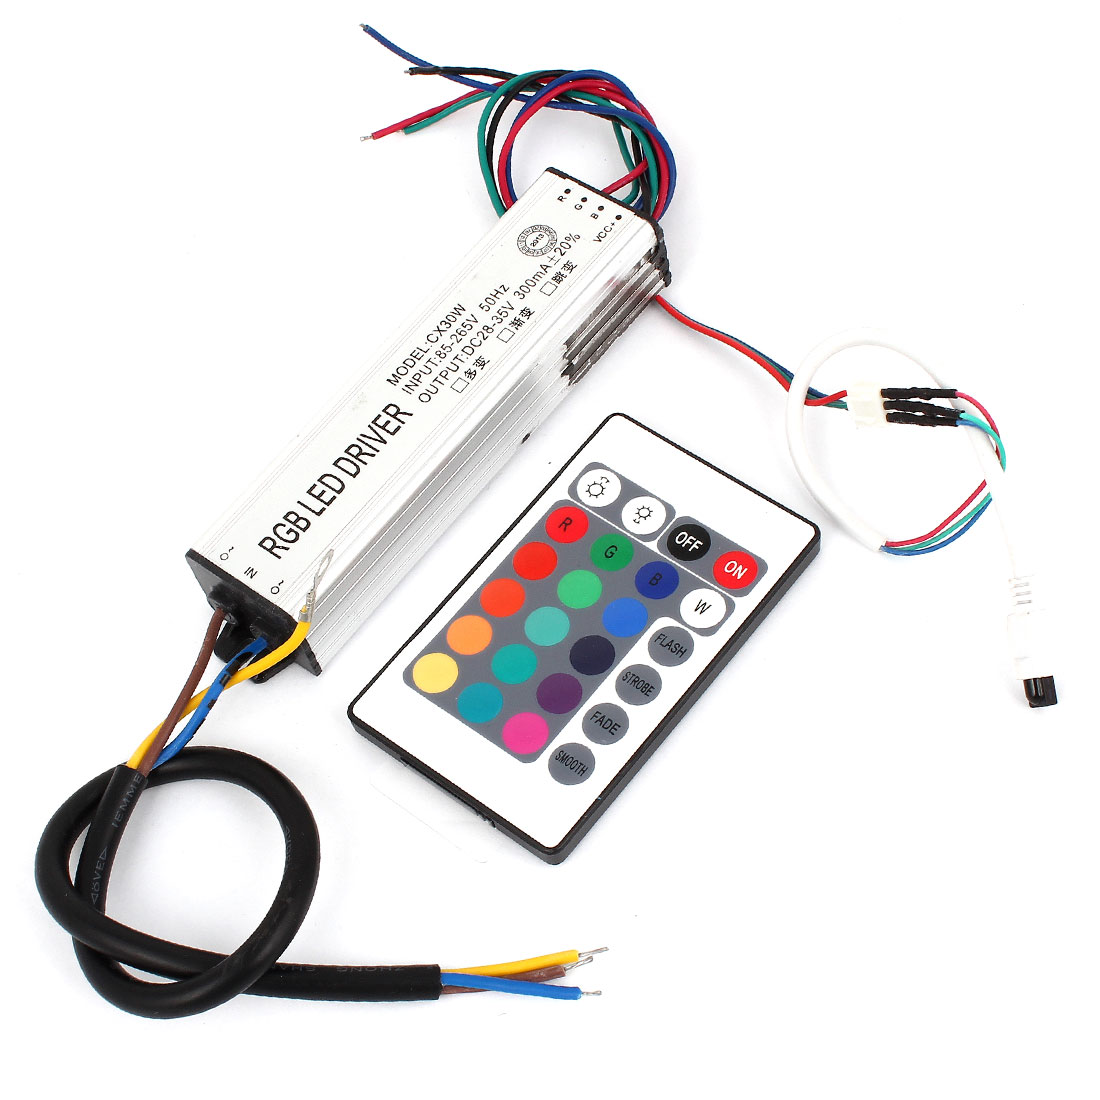 DC 85-265V 30W Output Constant Current Waterproof LED Driver w Remote